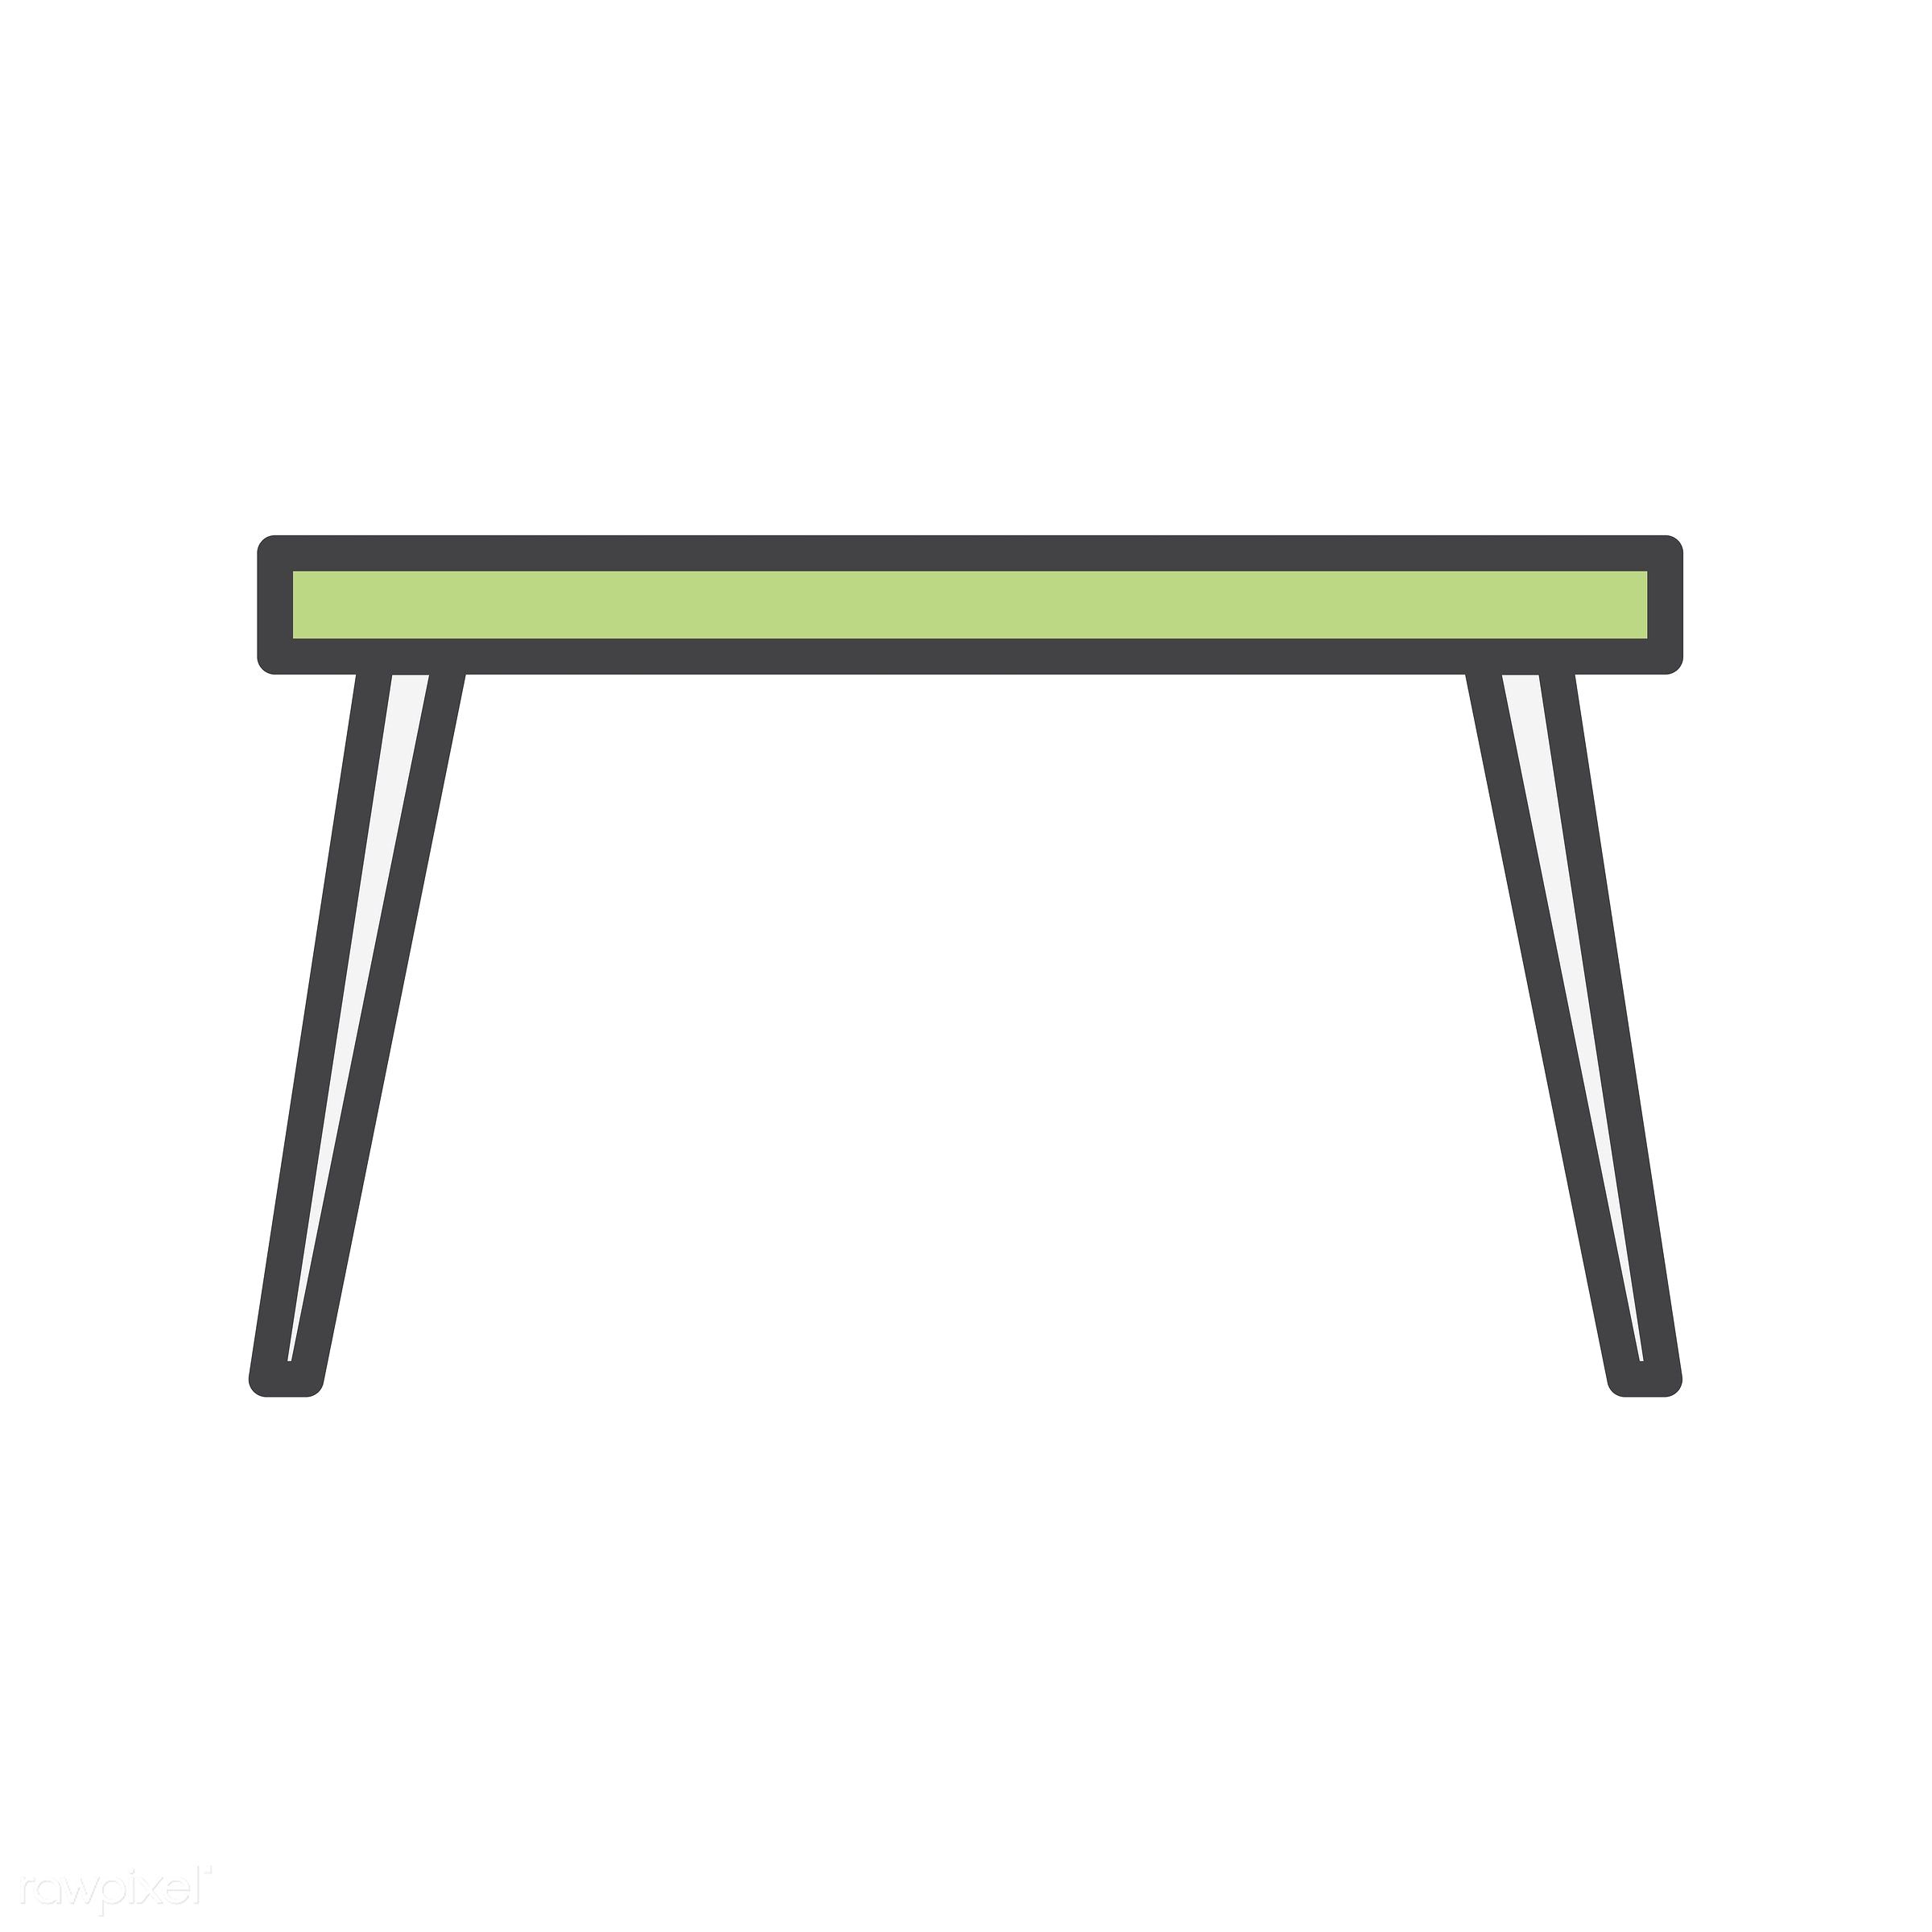 desk, house, abode, adults, comfort, cozy, dwelling, home, homely, household, living, pad, residence, table, vector, warmth